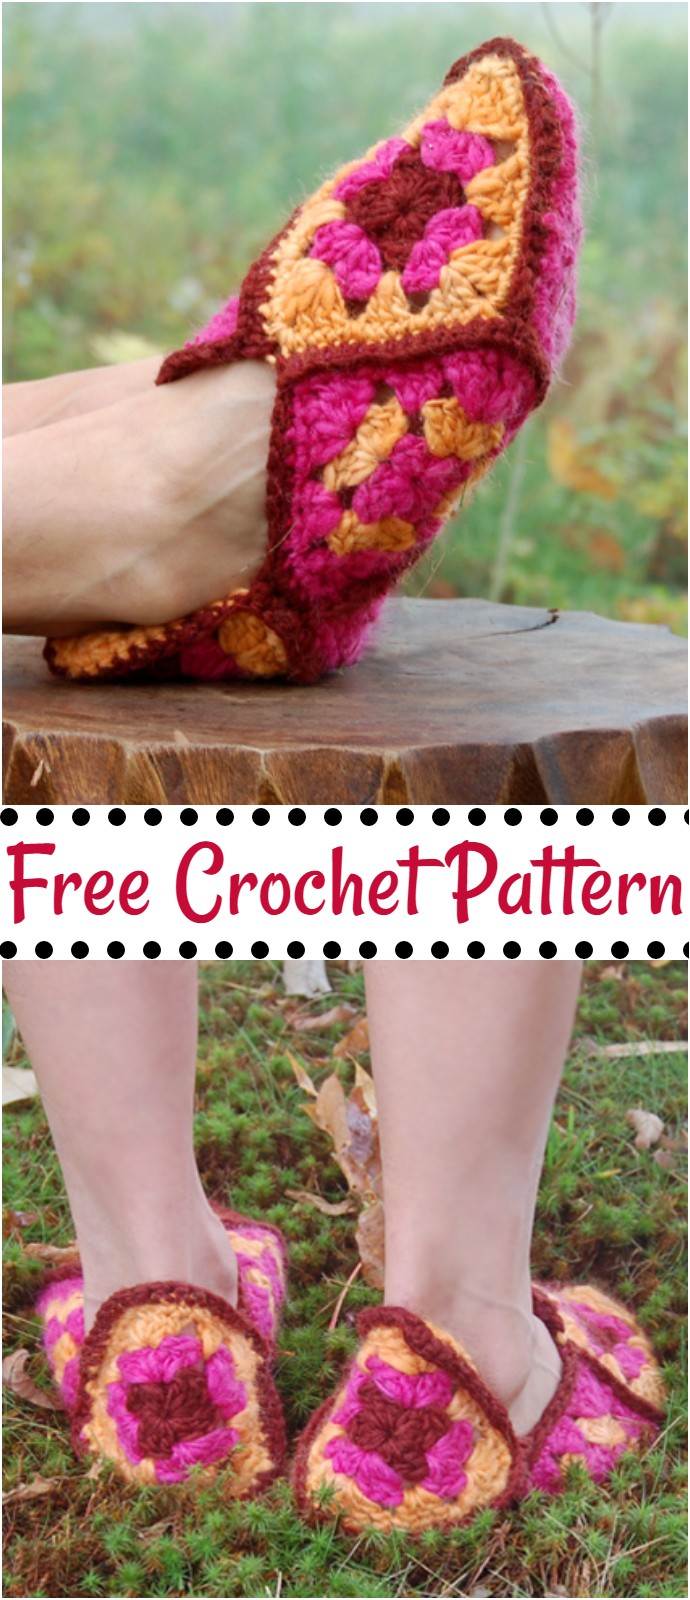 Free Crochet Granny Square Slippers